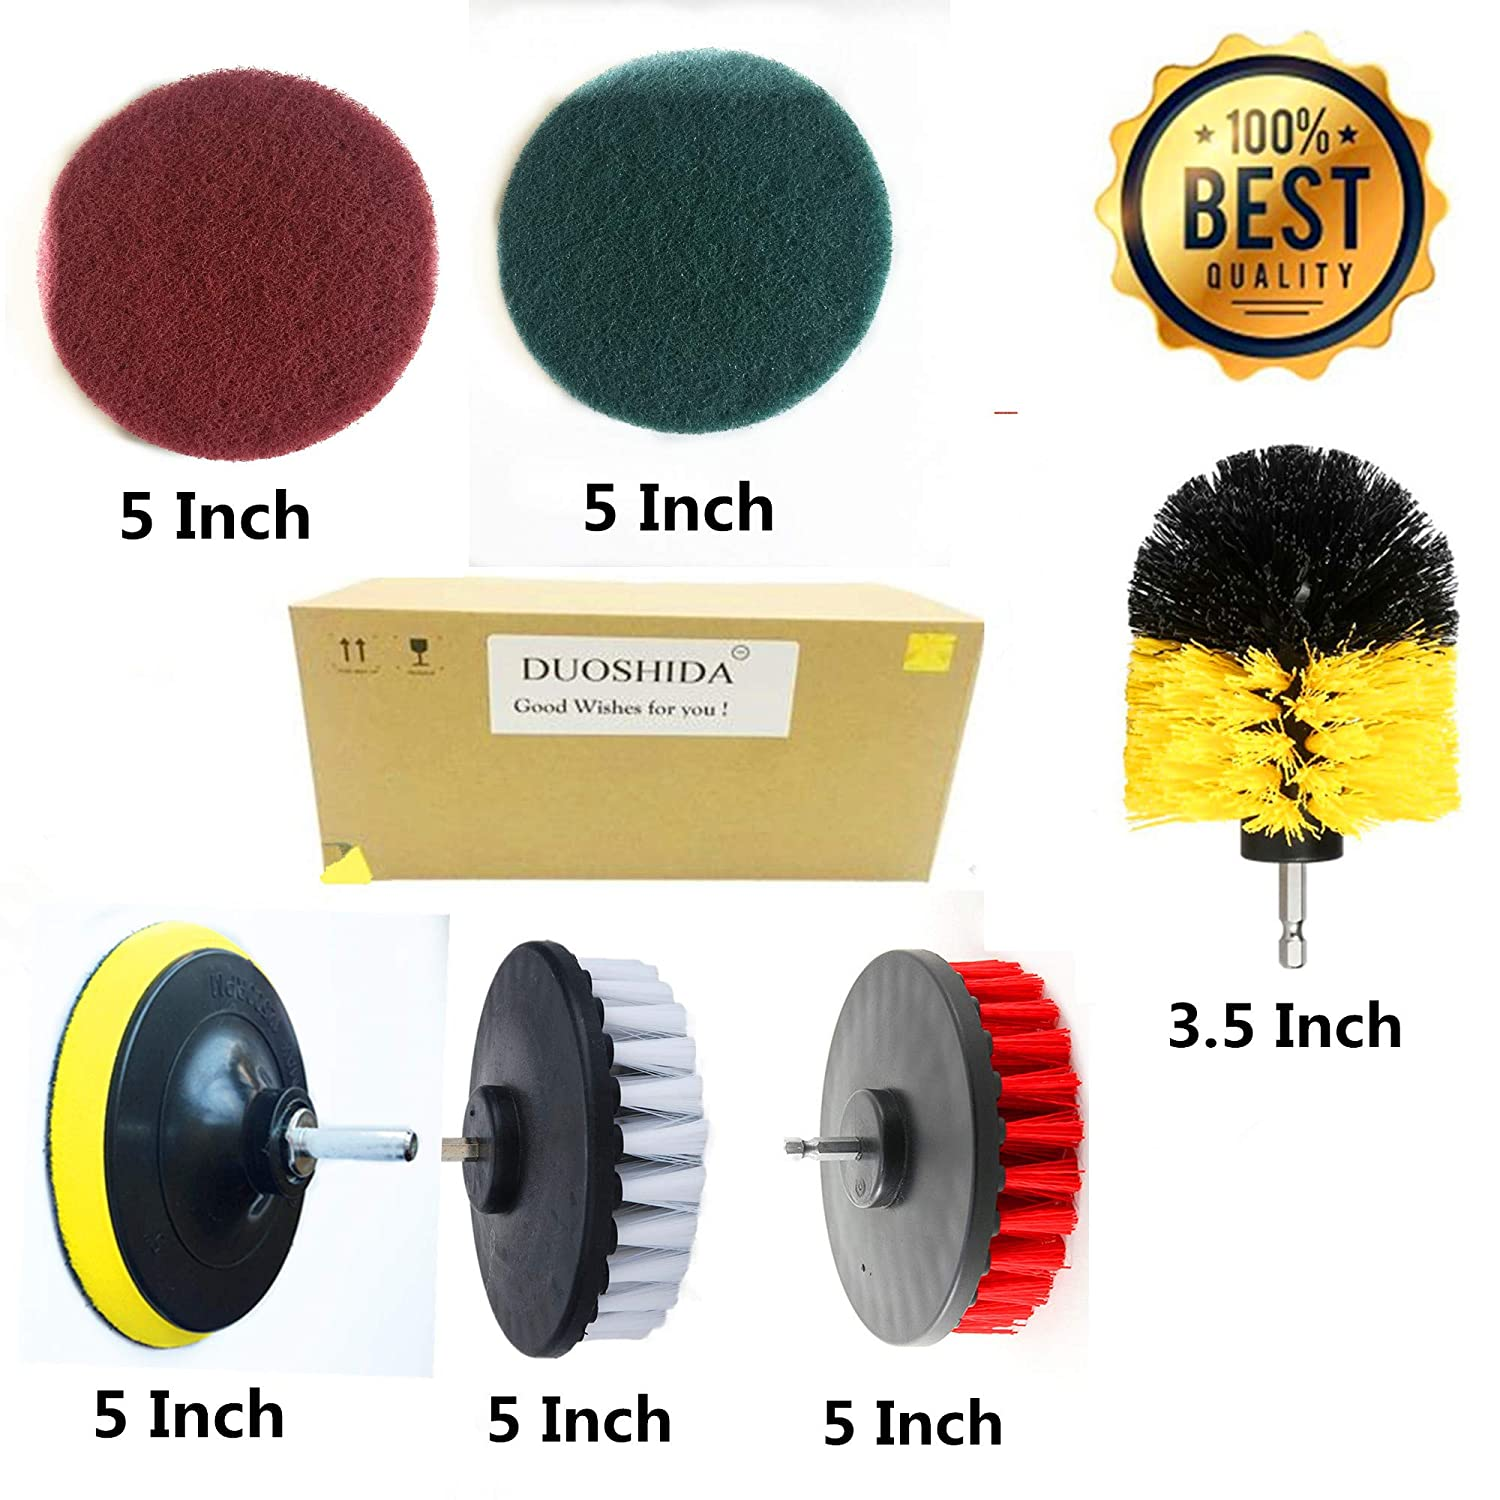 6 Piece Drill Brush Attachments: 5 inch Drill Brushes & Scouring Pads & Suction Cup - Clean Tough Dirt - for Marble/Granite Tile, Grout, Rim, Kitchen Sink,Carpet, Coated Doors, Fiberglass Tubs Hua Hengshun Co. ltd